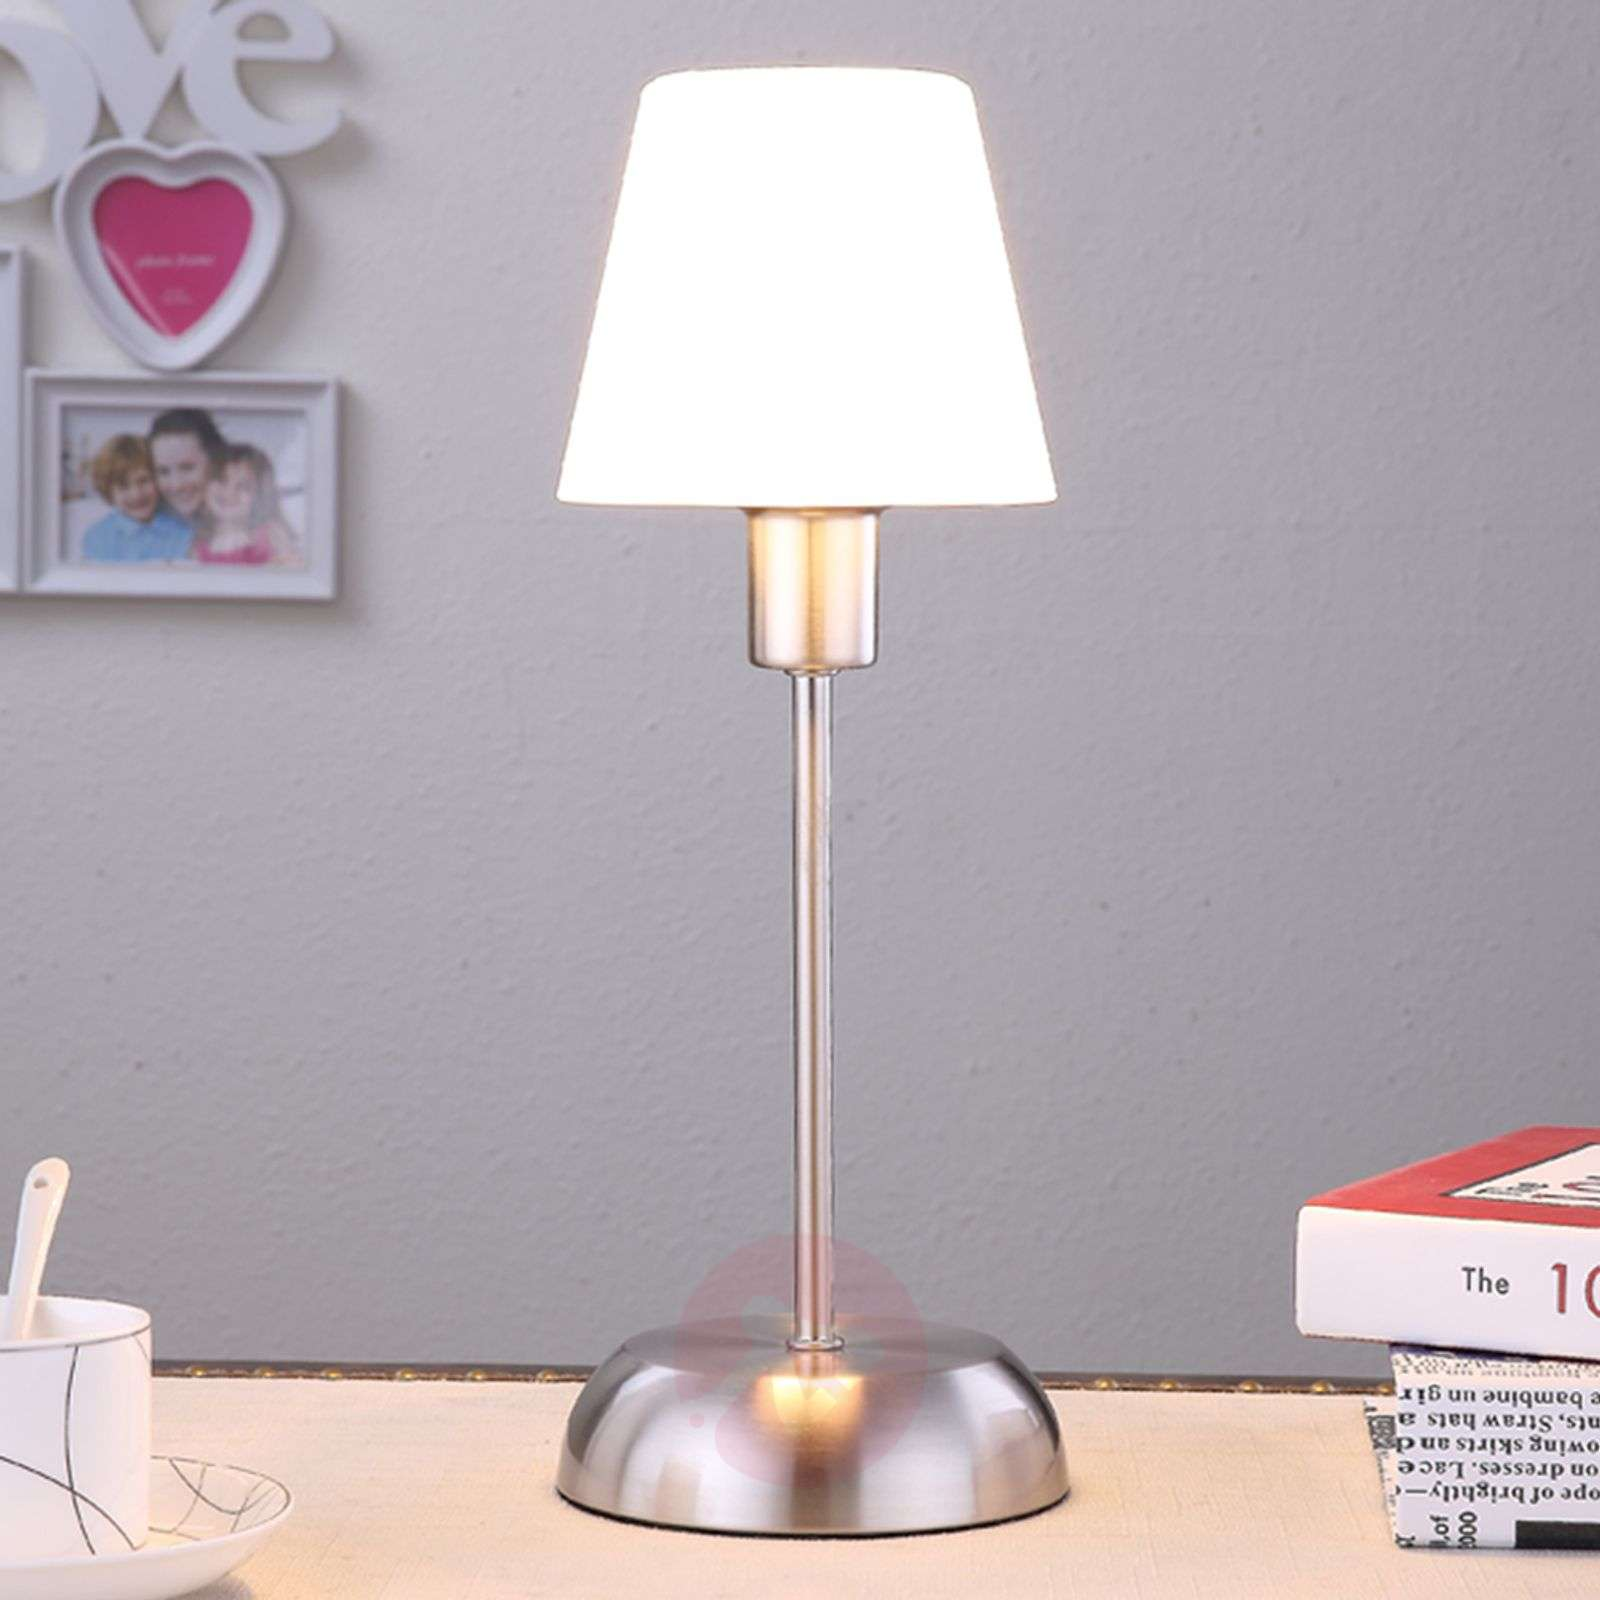 Gregor table lamp with a glass lampshade-9620806-01